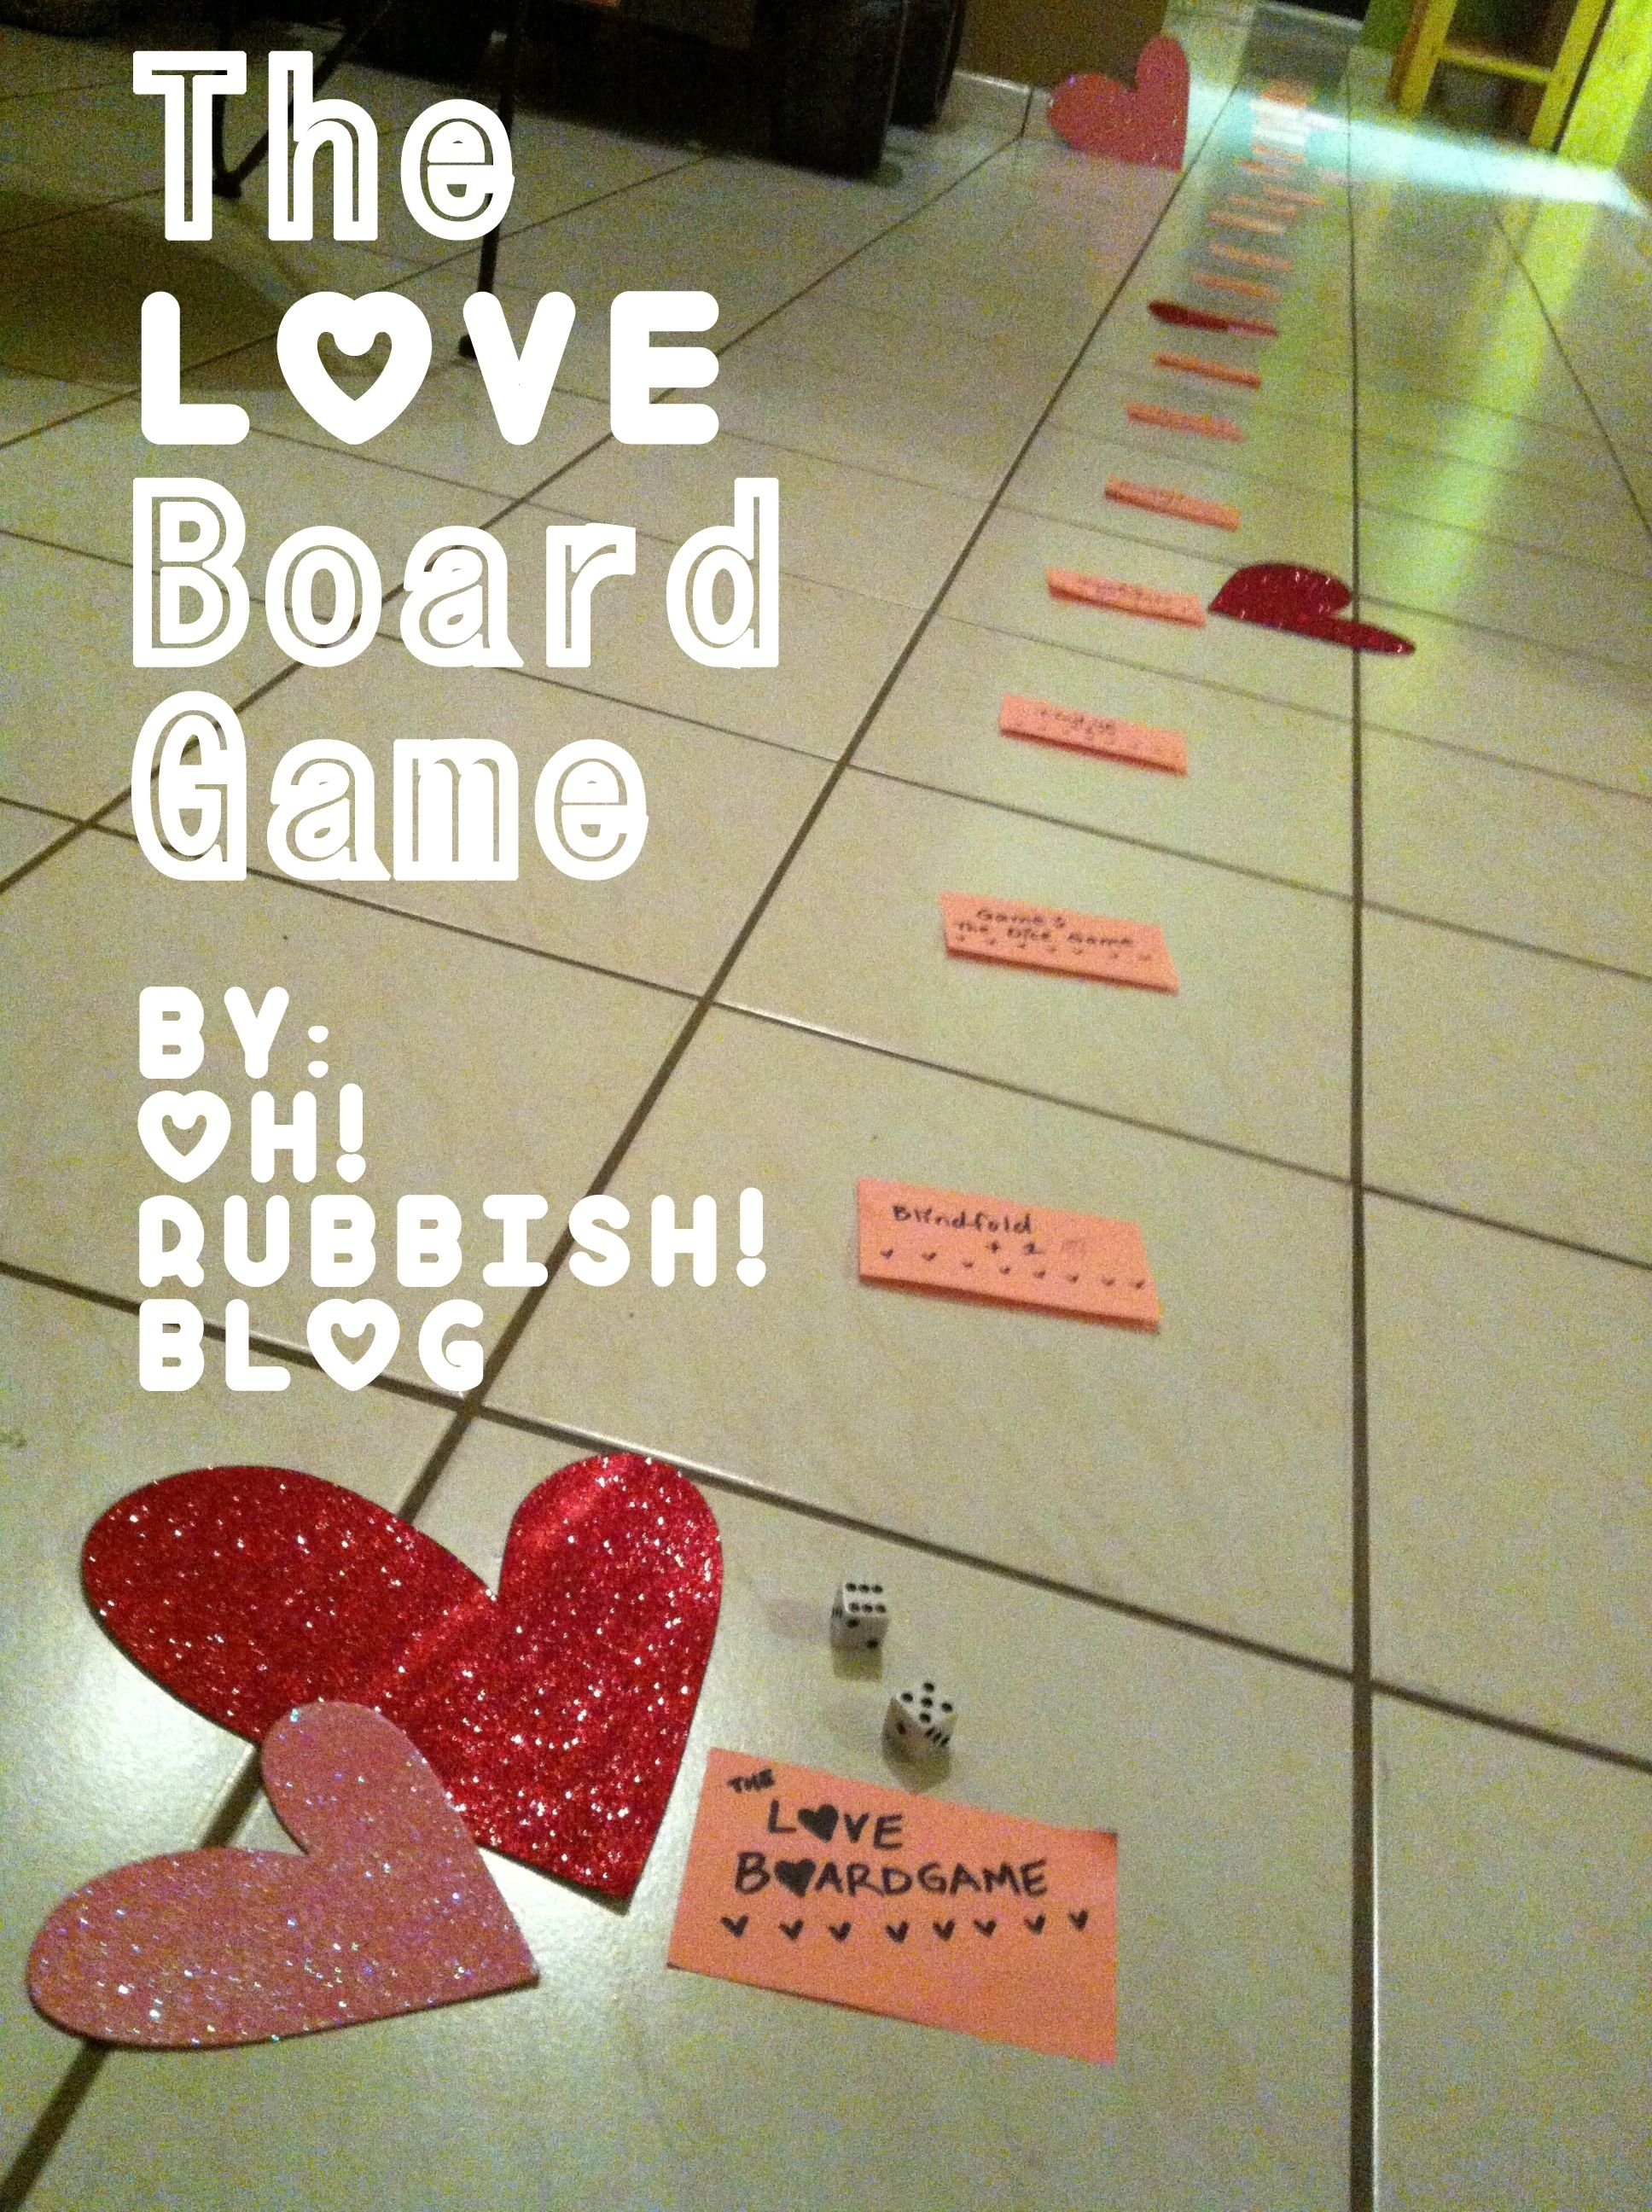 10 Fashionable Valentine Date Ideas For Him the love board game valentine game for couples valentine day 19 2020